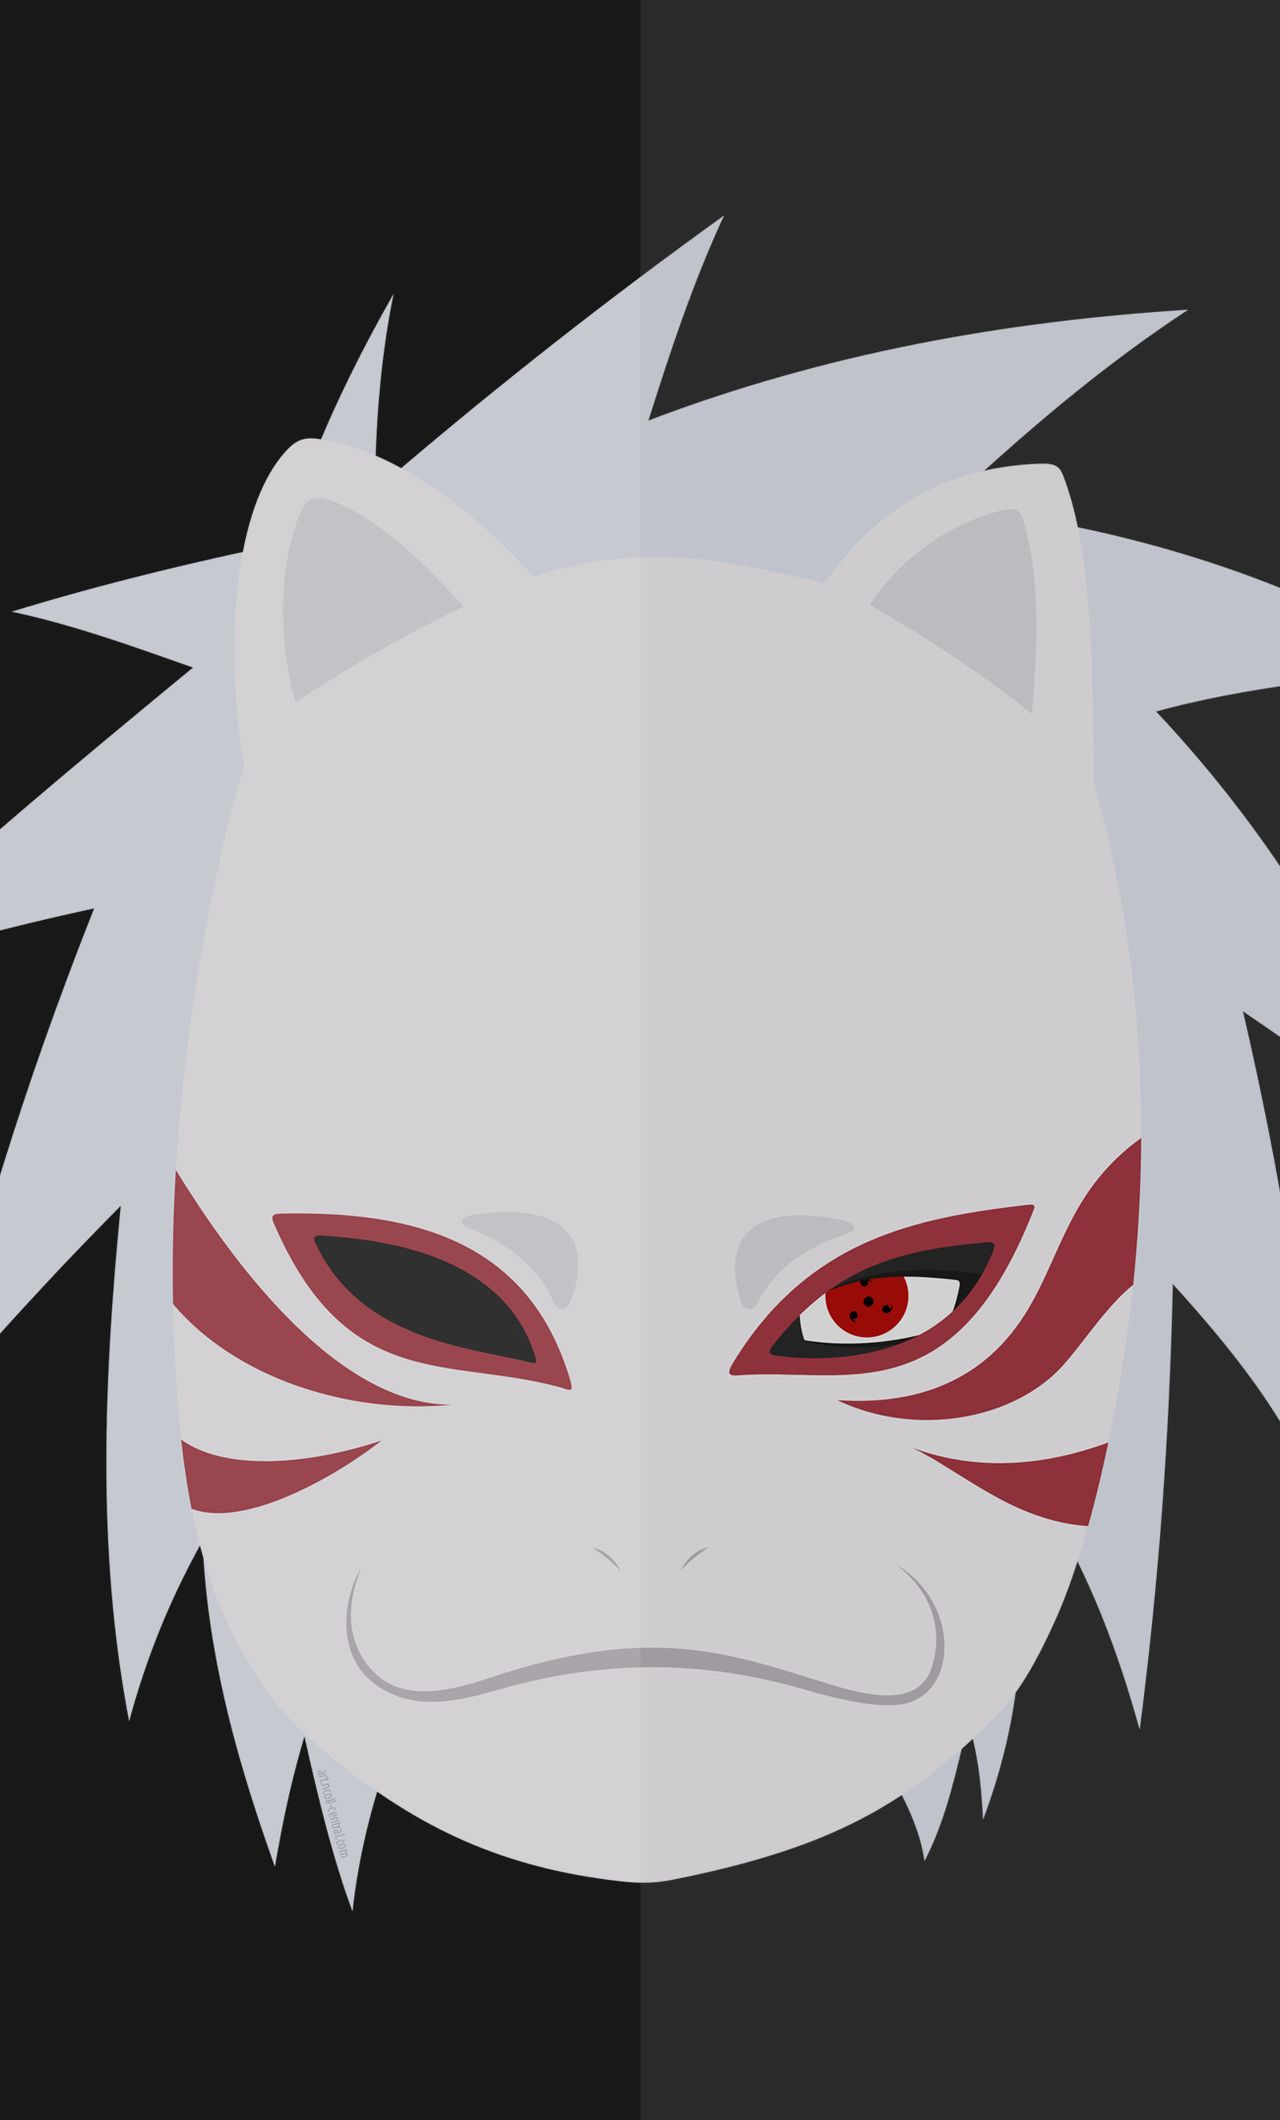 Naruto Kakashi Iphone Wallpapers Top Free Naruto Kakashi